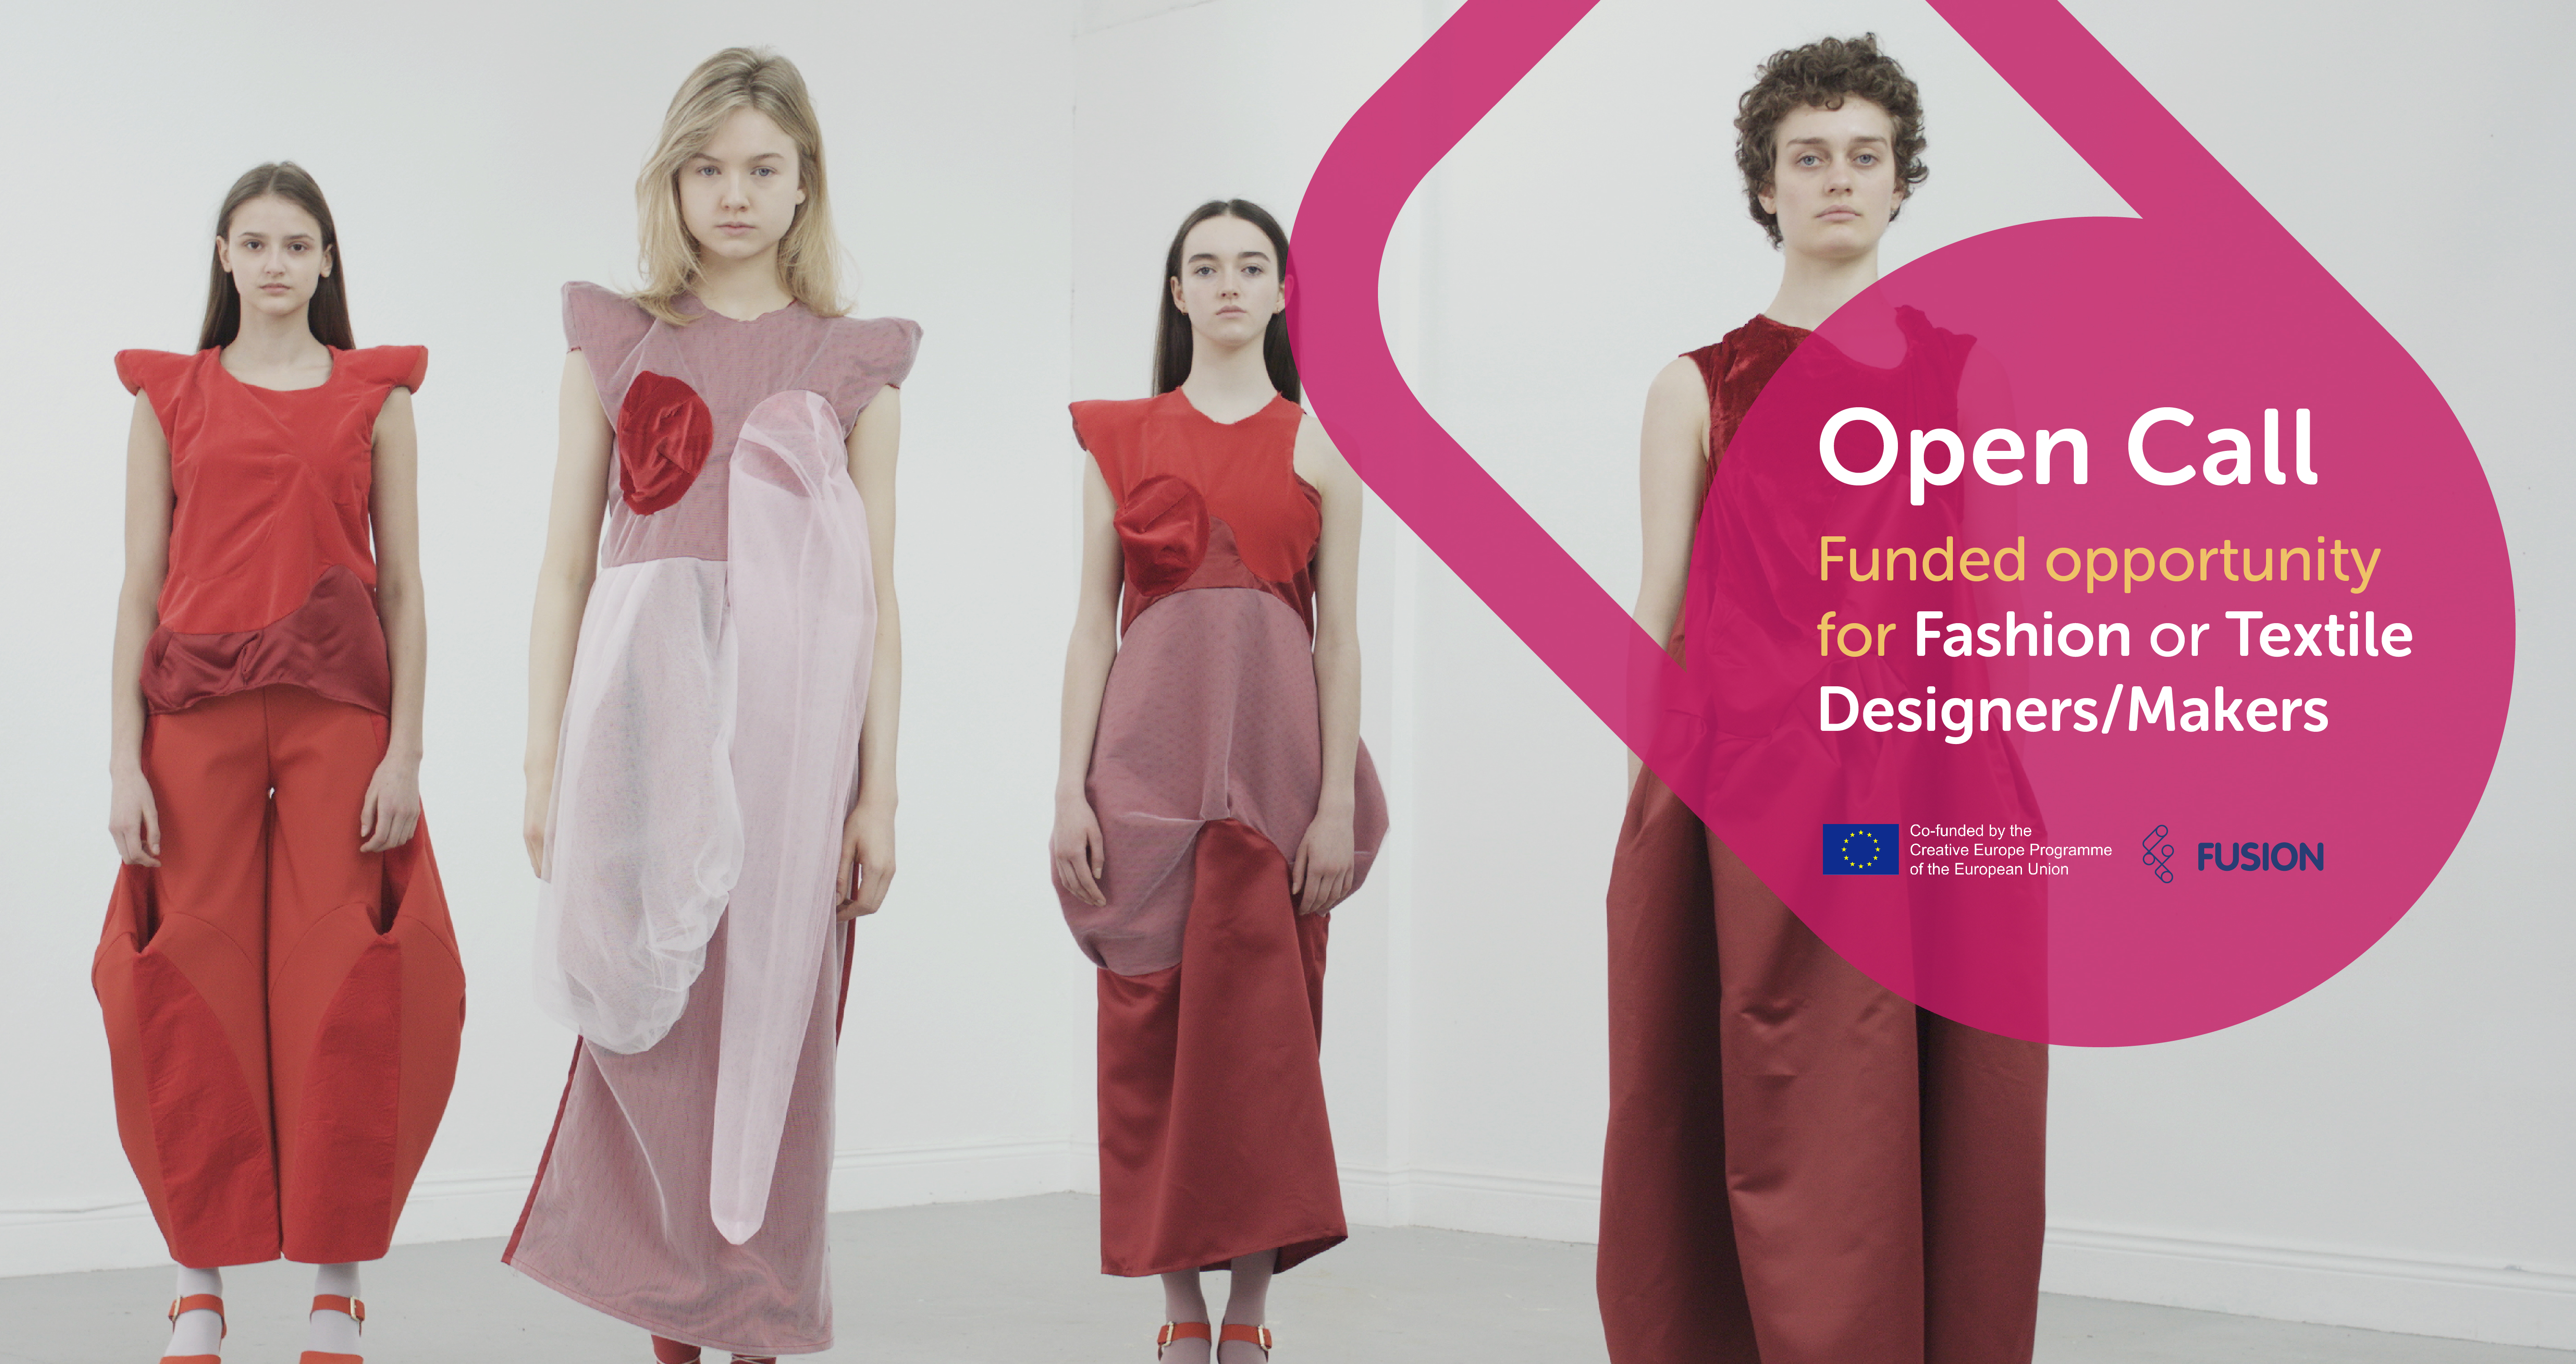 FUNDED OPPORTUNITY for Fashion or Textile Designers/Makers